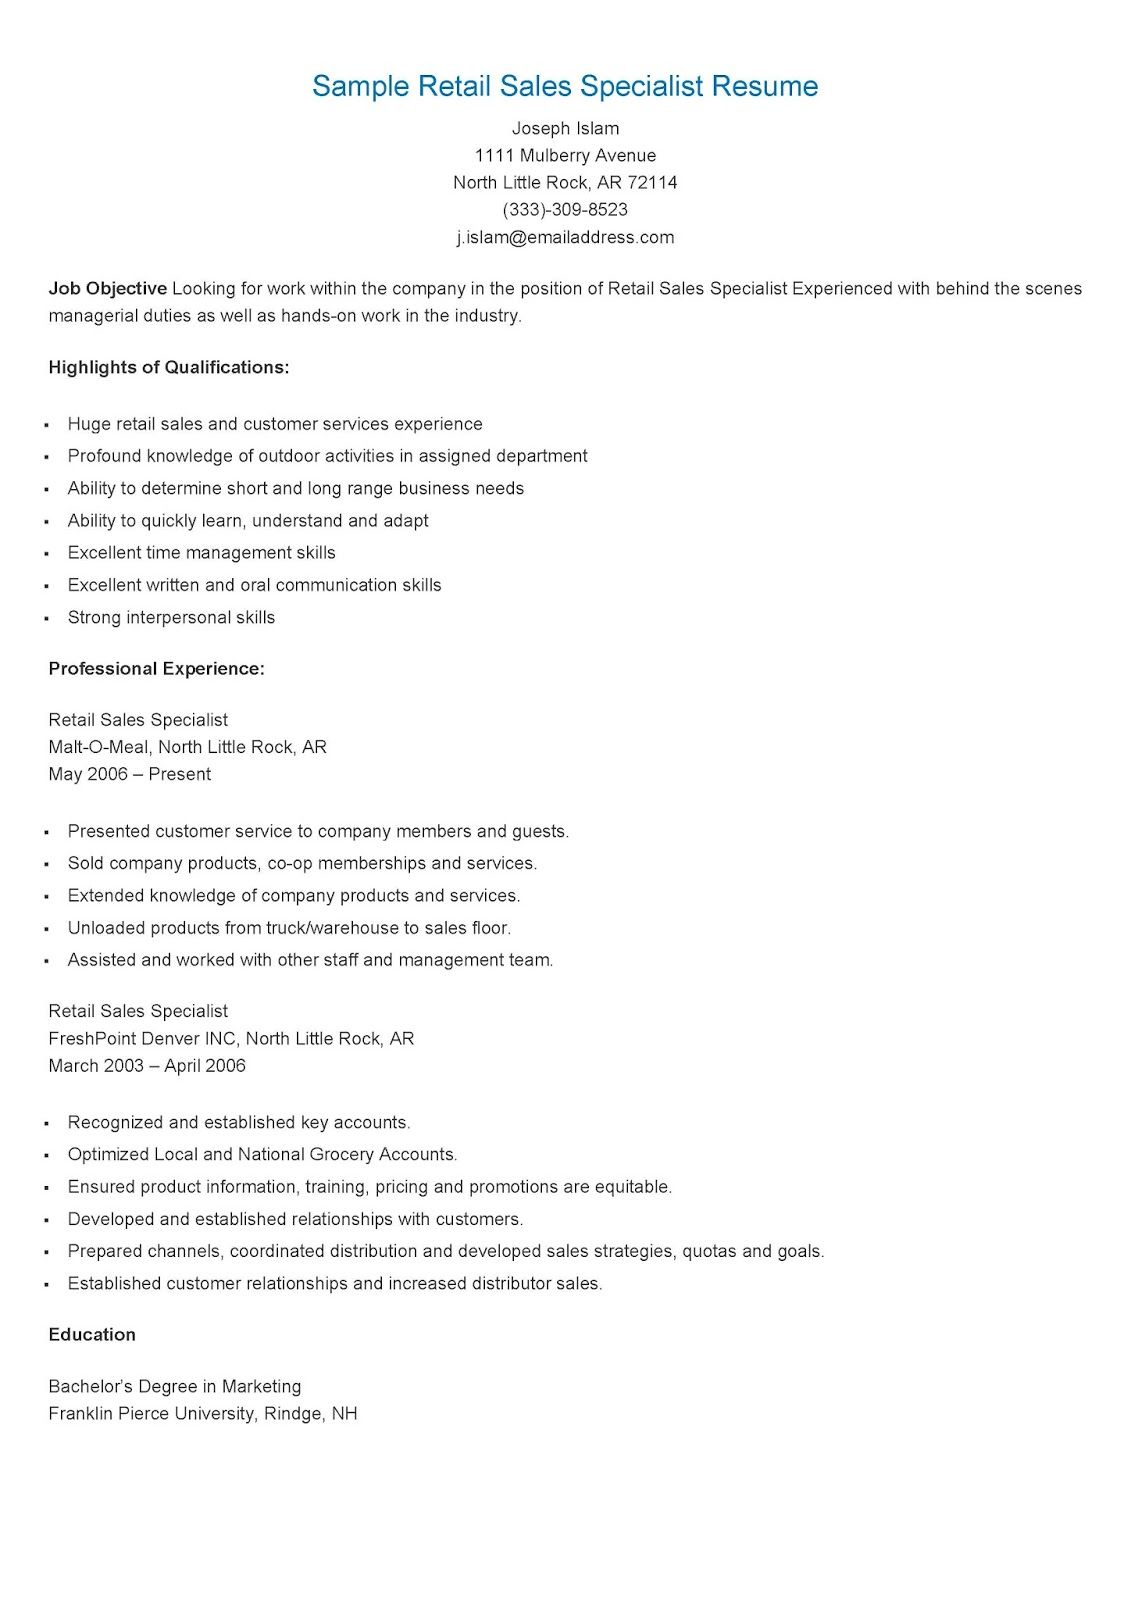 Sample Retail Sales Specialist Resume Resame Pinterest Resume